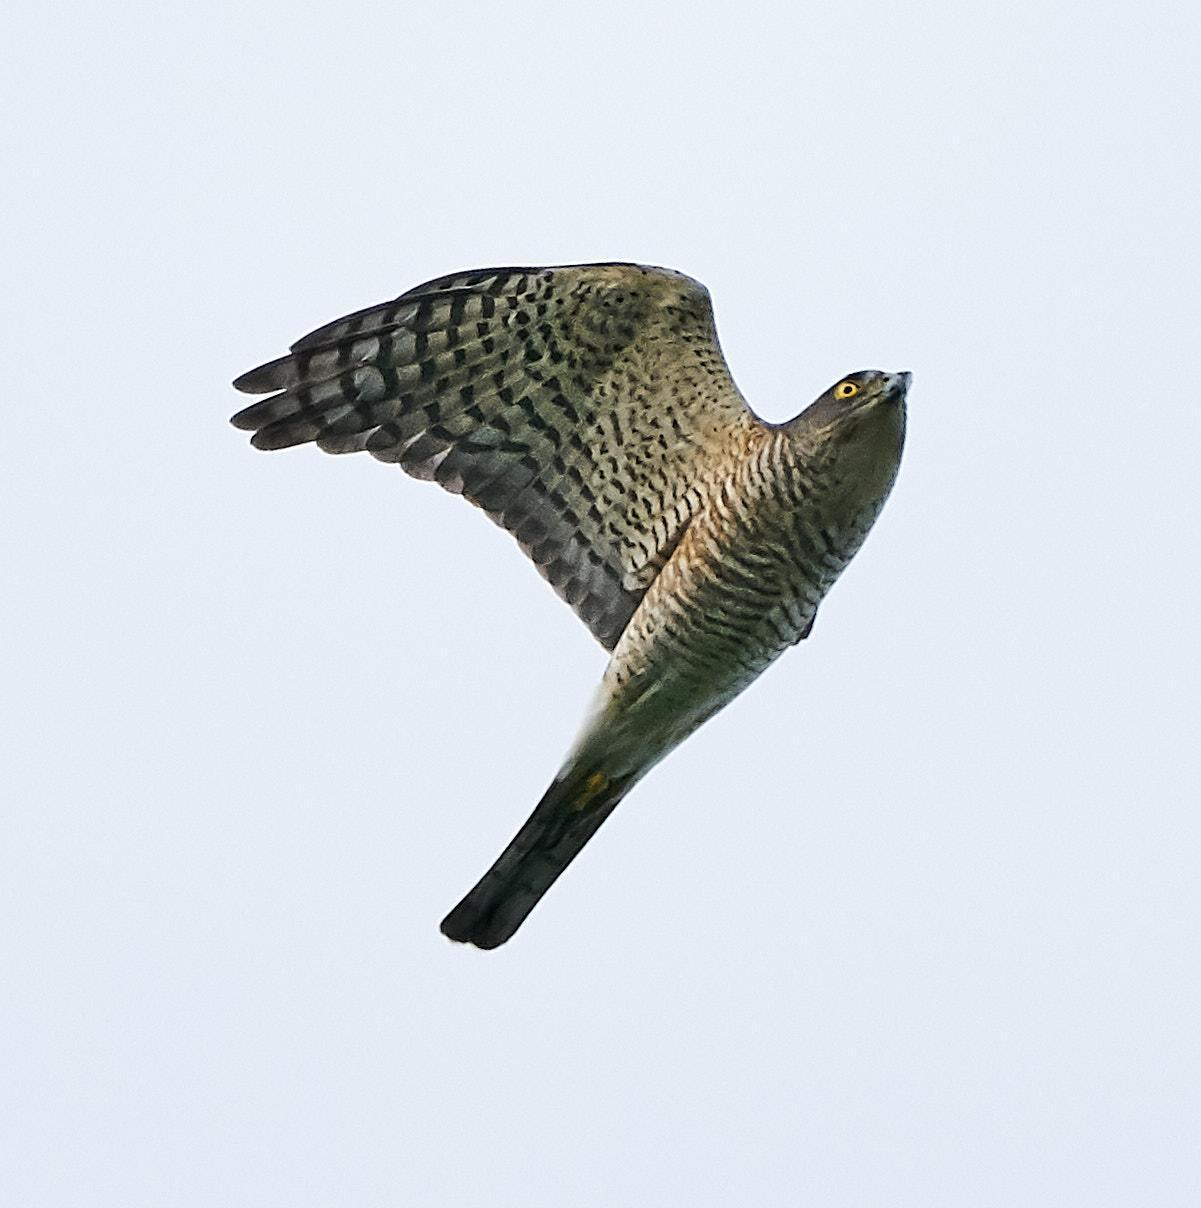 Japanese Sparrowhawk Photo by Steven Cheong